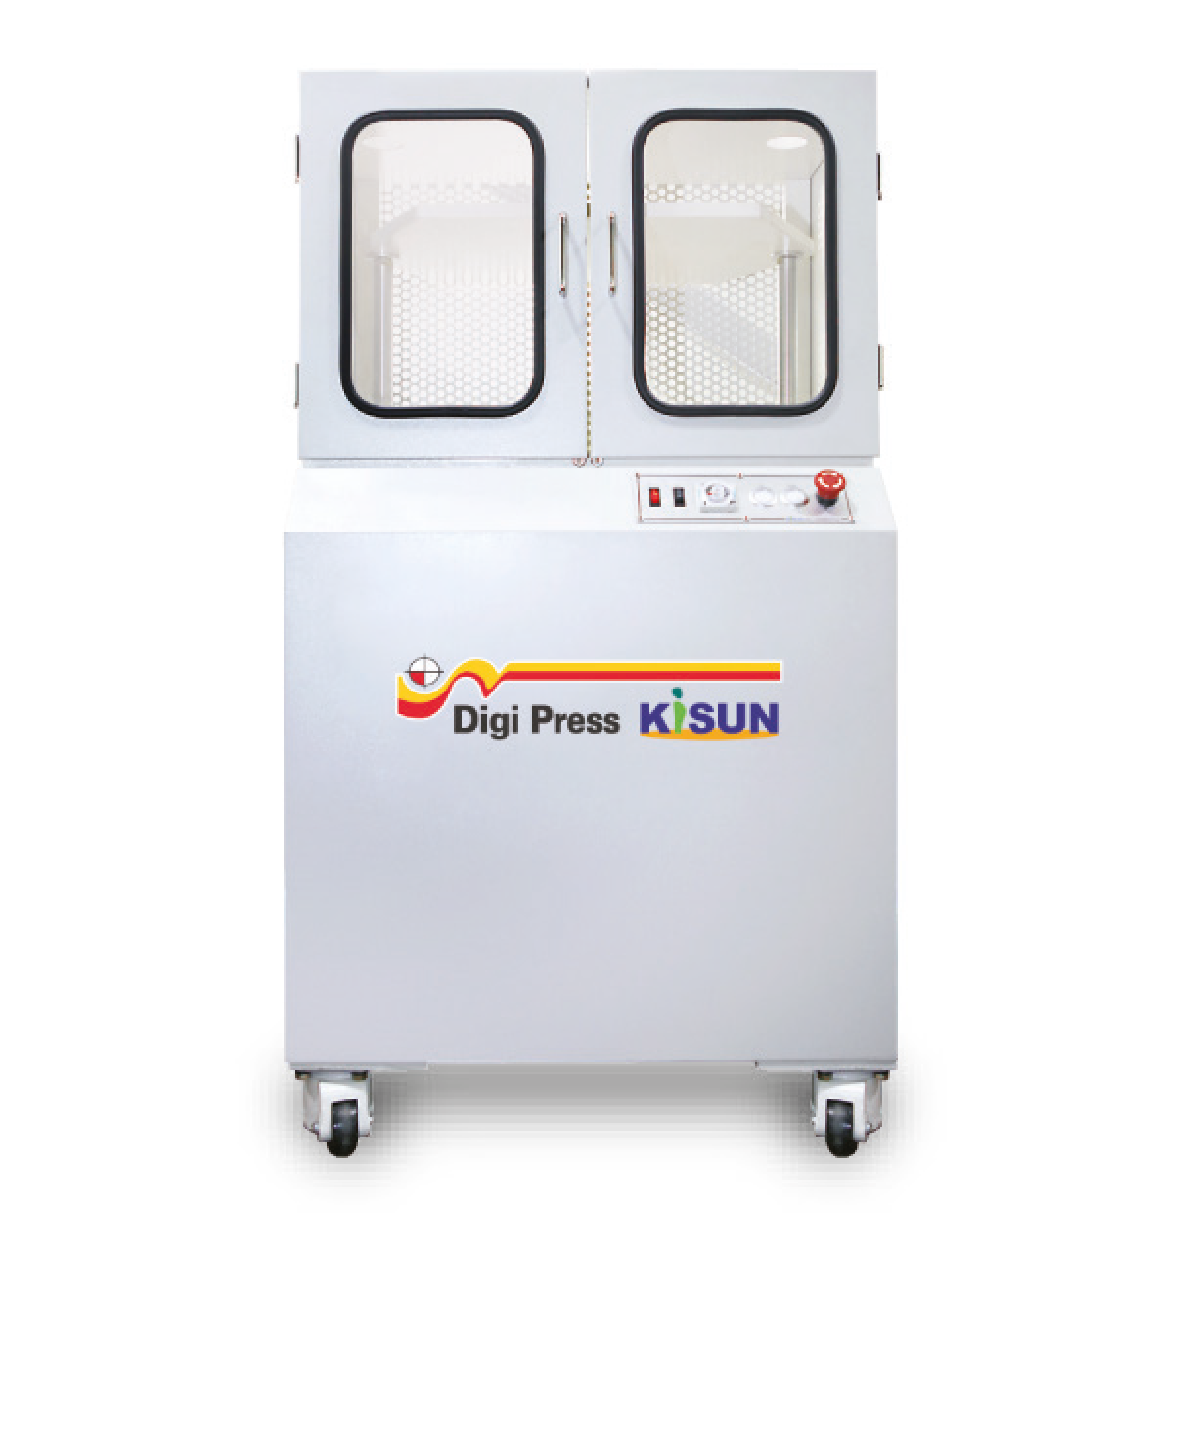 Kisun DigiPress